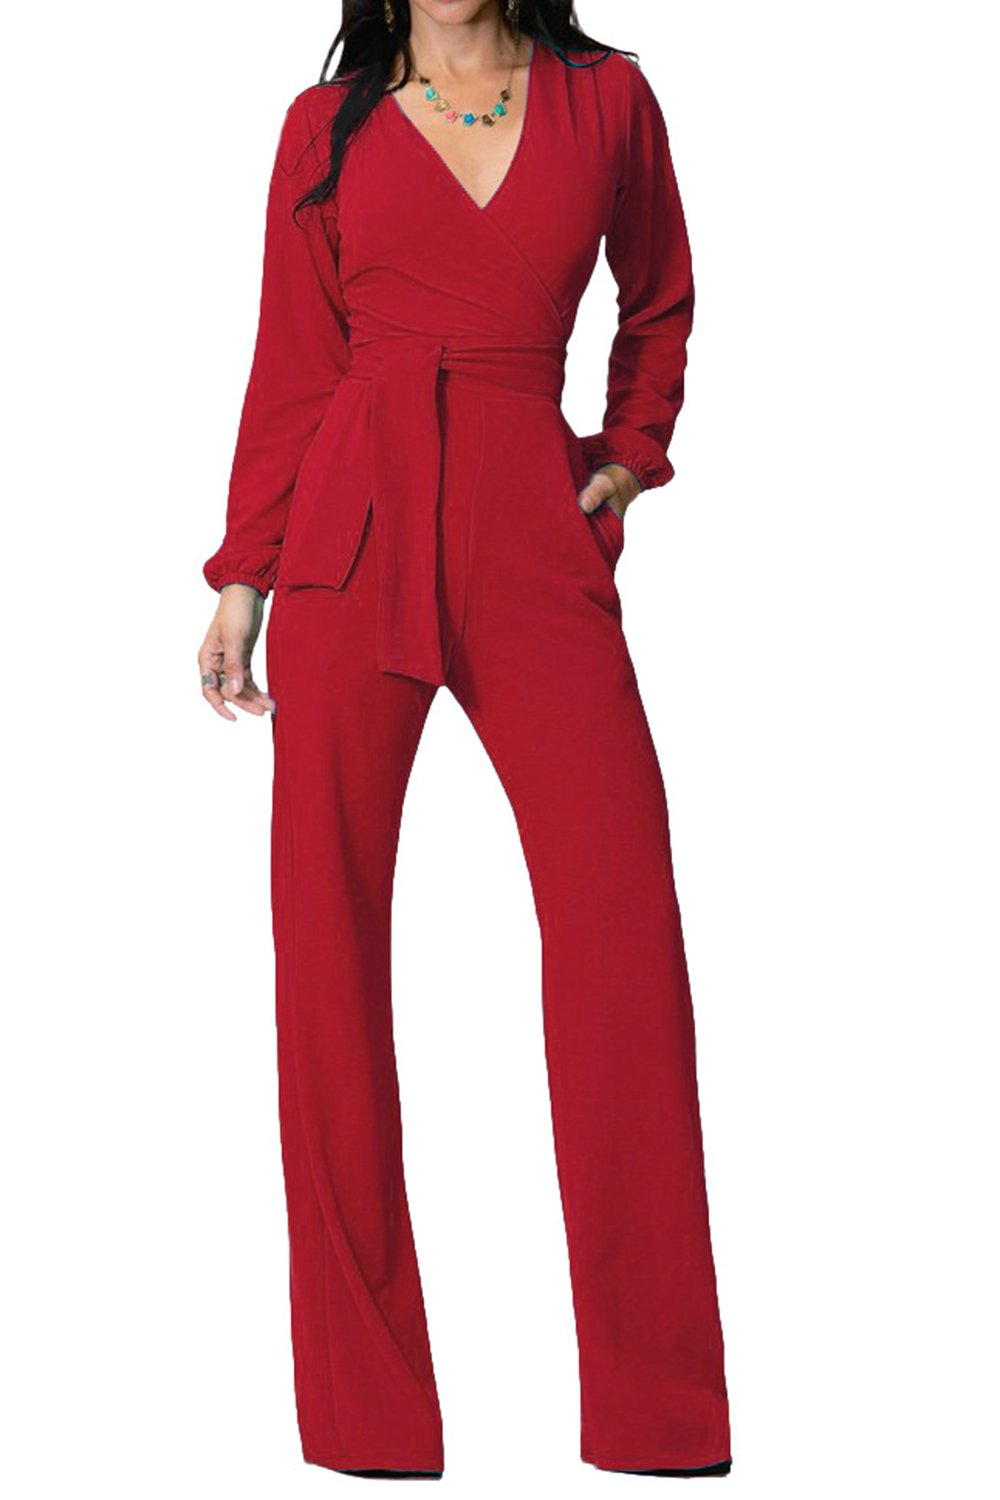 Zilcremo Women Elegant Long Sleeve V Neck Full Lined Wrap Jumpsuits Overall CAFZ702